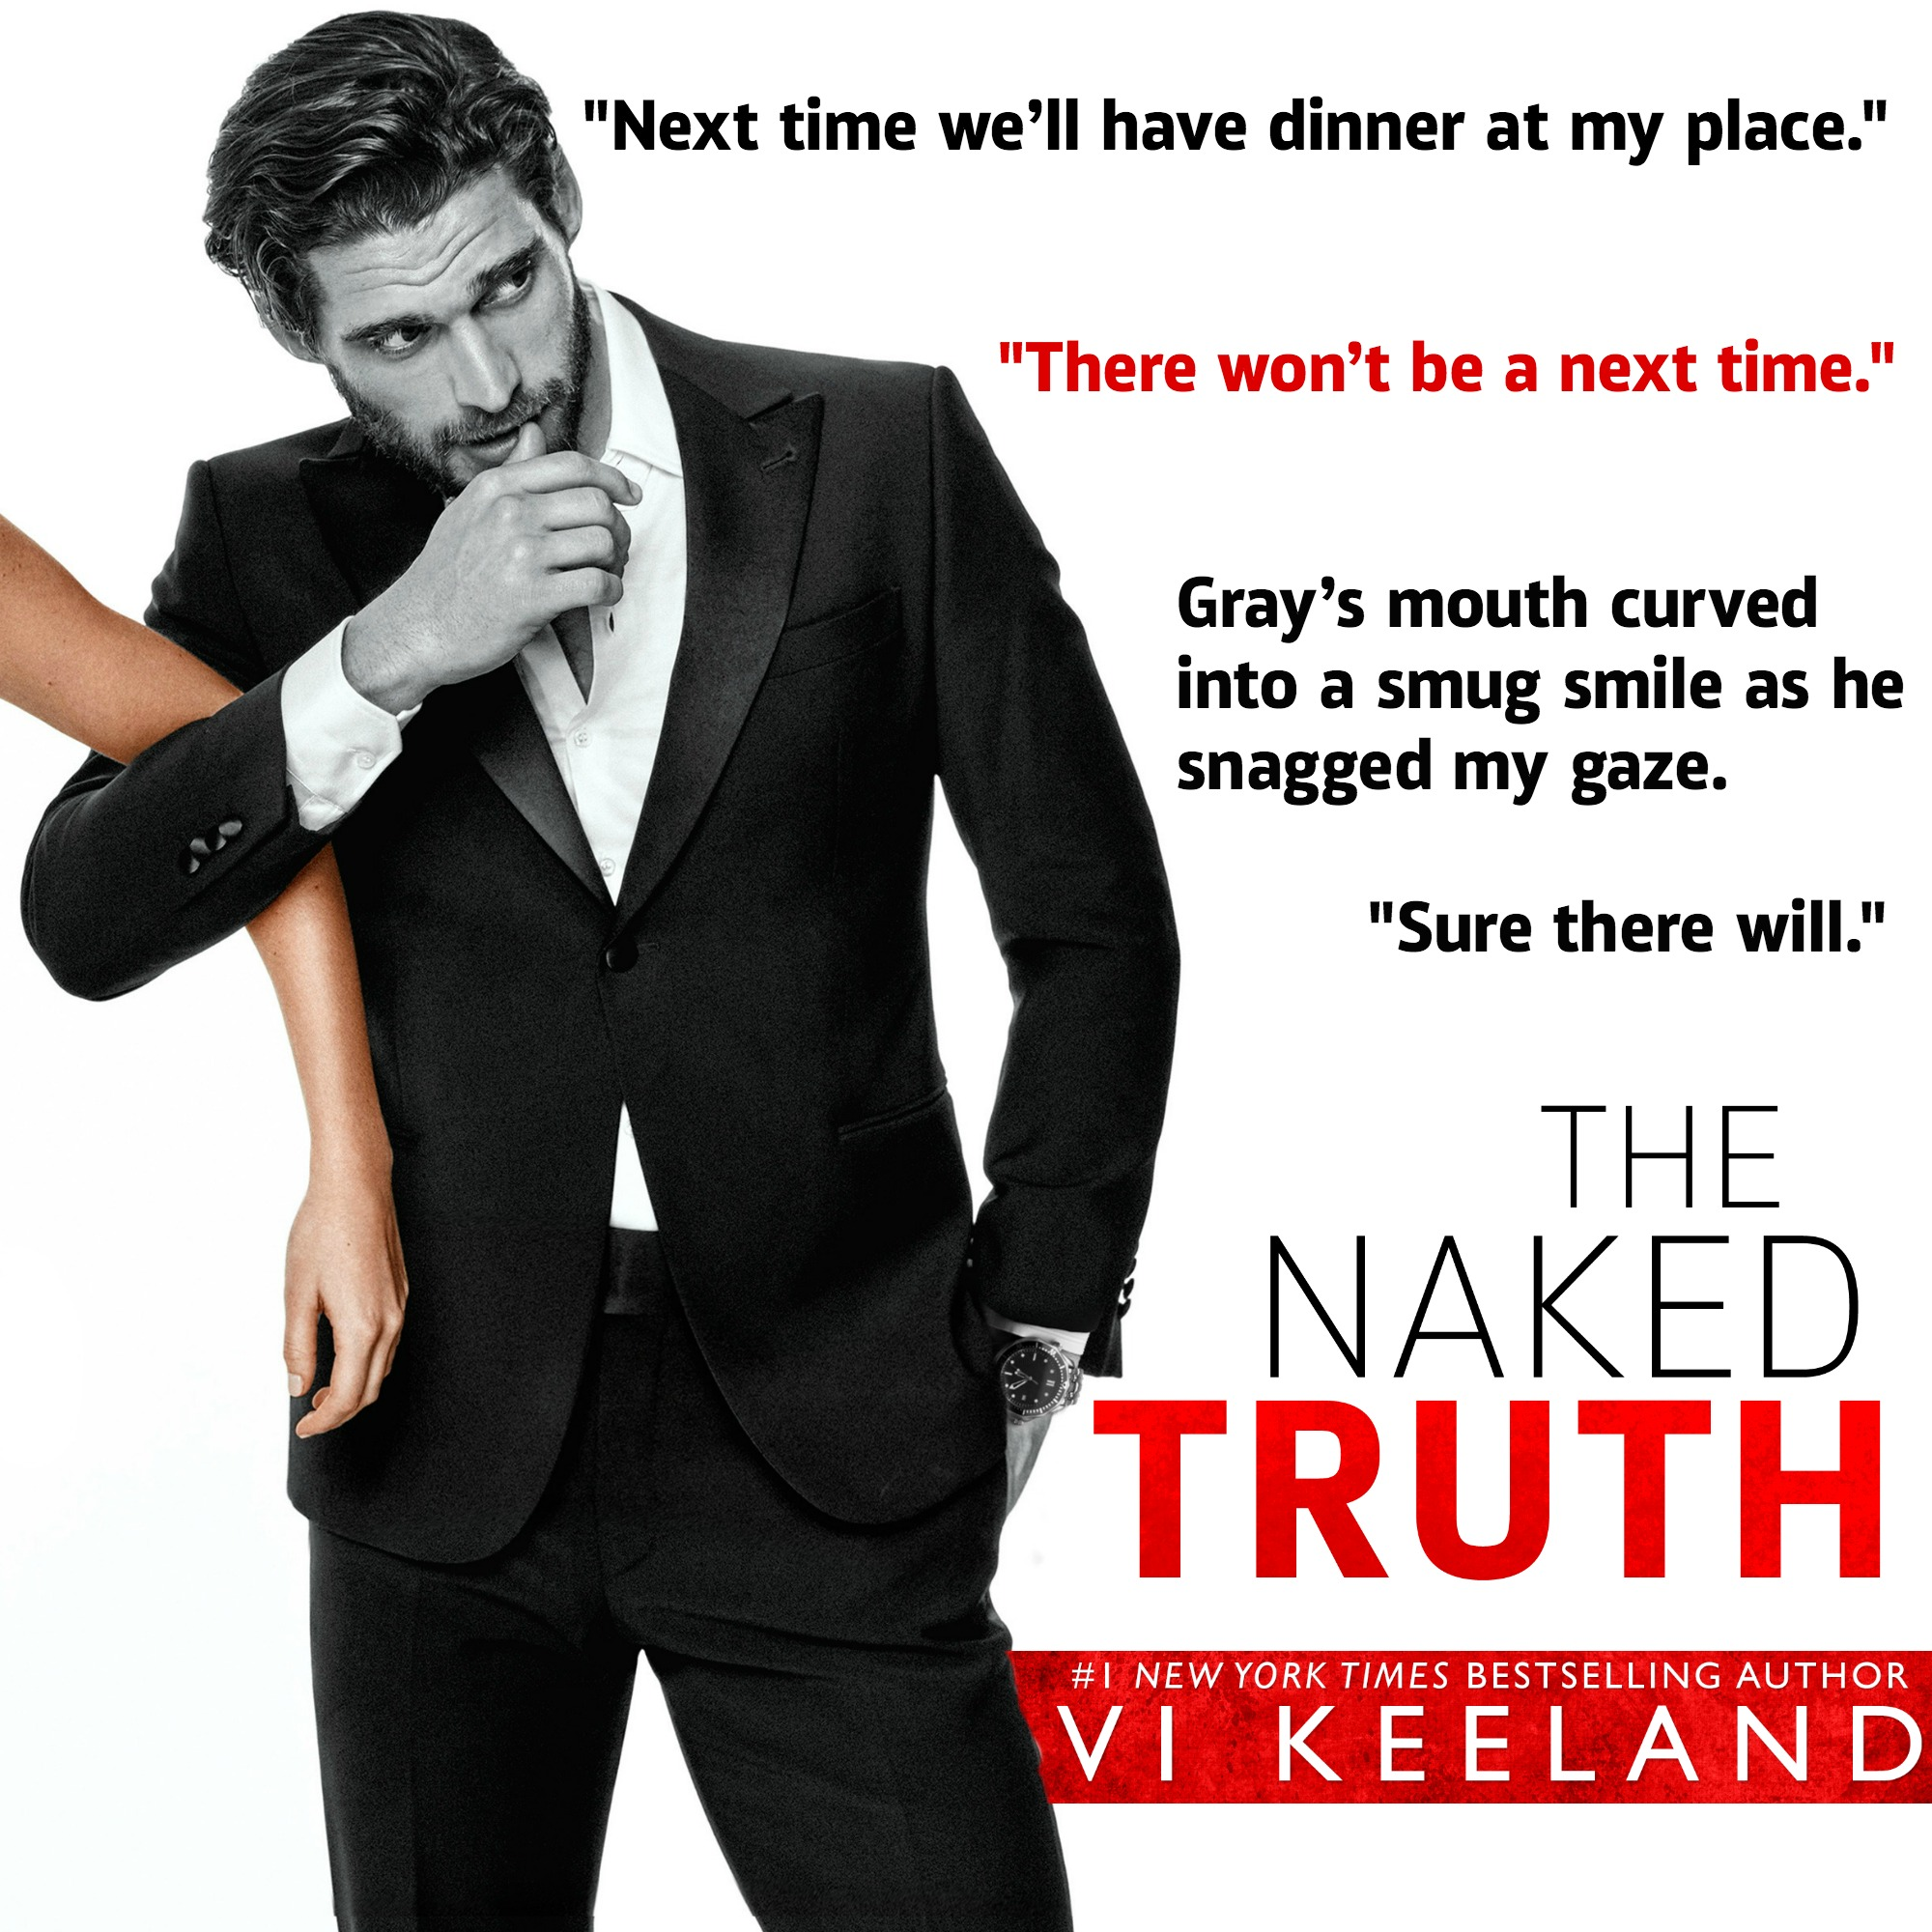 Vi Keeland Libros Once Upon A Twilight Excerpt Reveal The Naked Truth By Vi Keeland